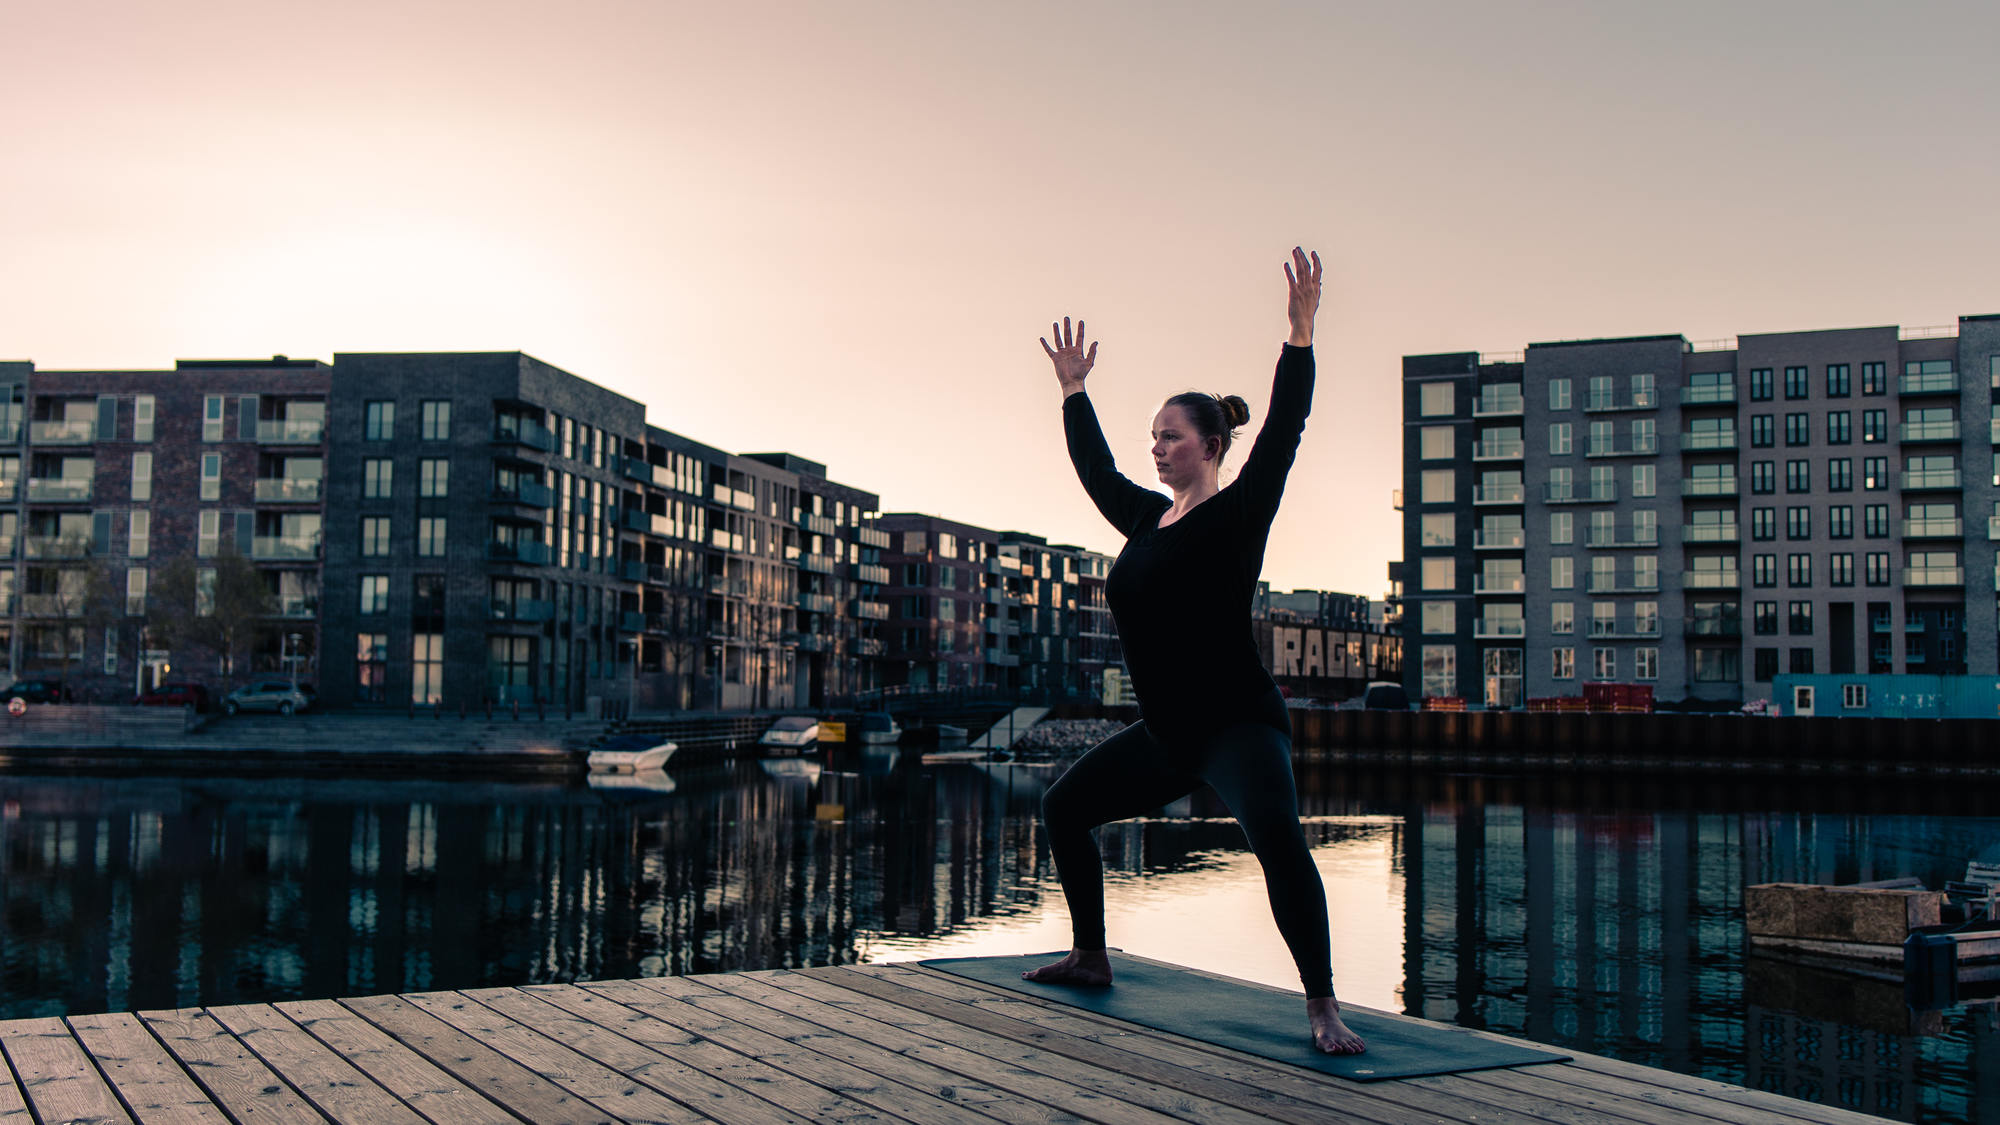 urban-yoga-photoshoot-copenhagen-silhouettes-poses-23